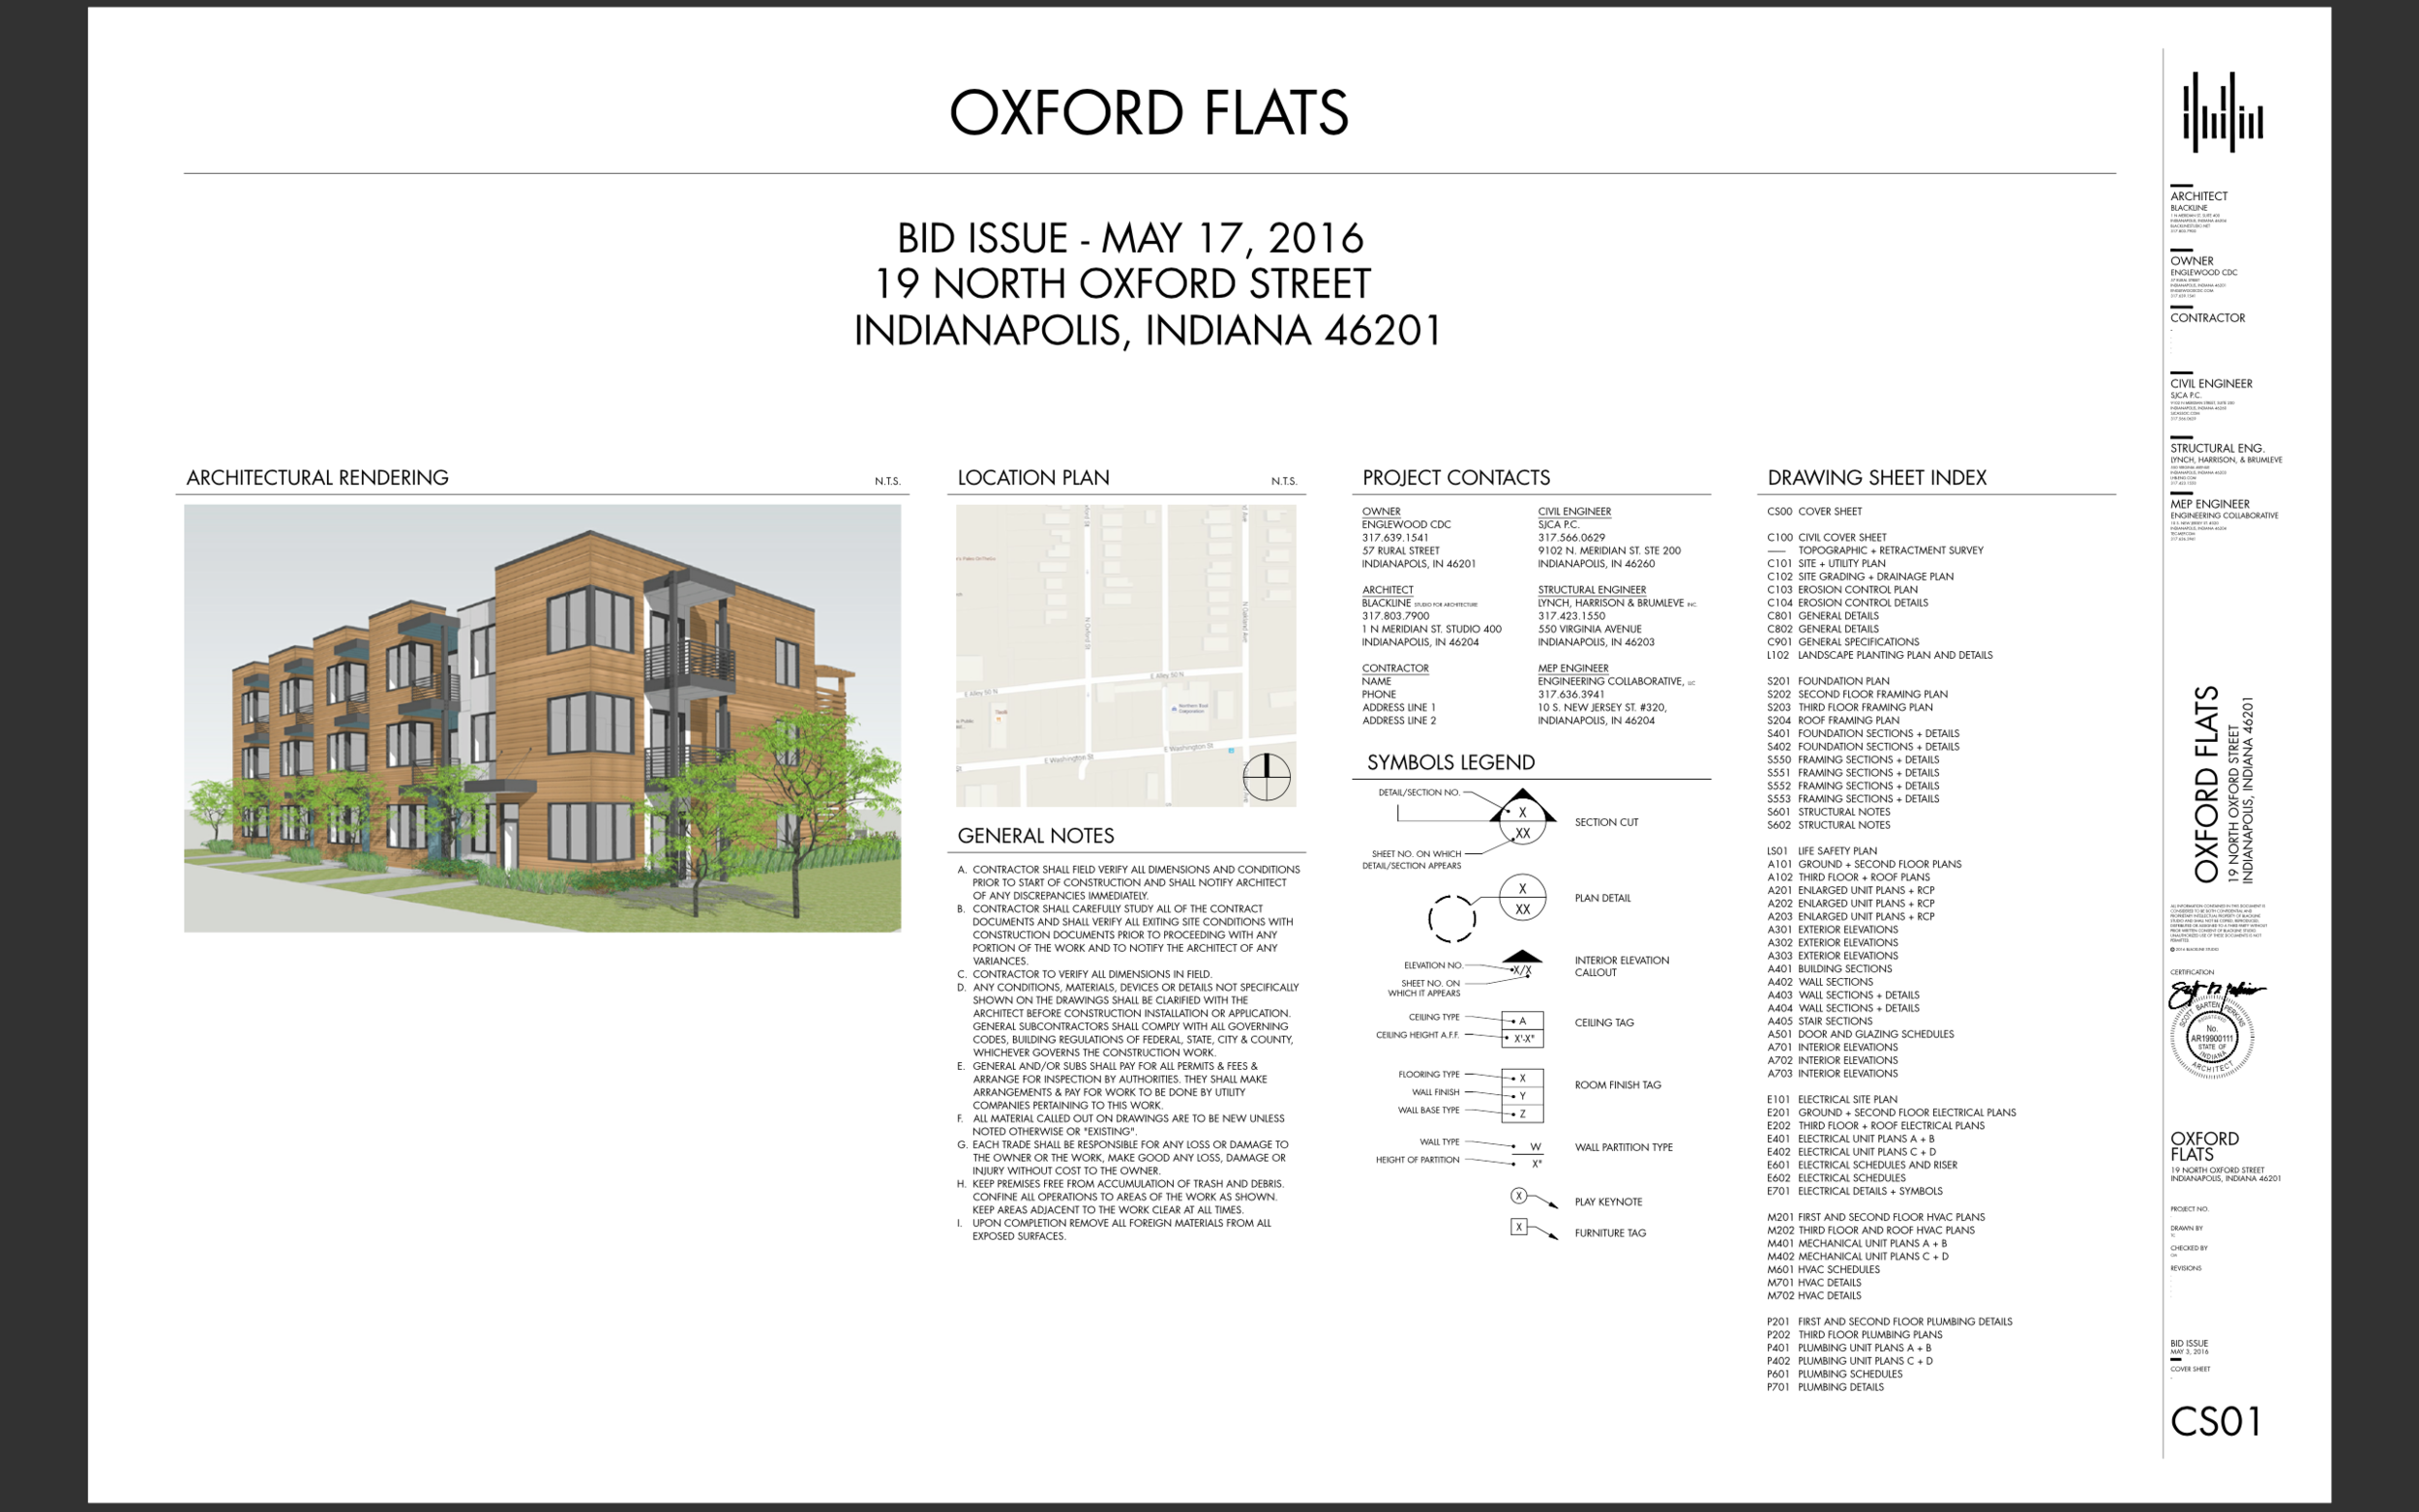 Oxford Flats Plans Cover Sheet